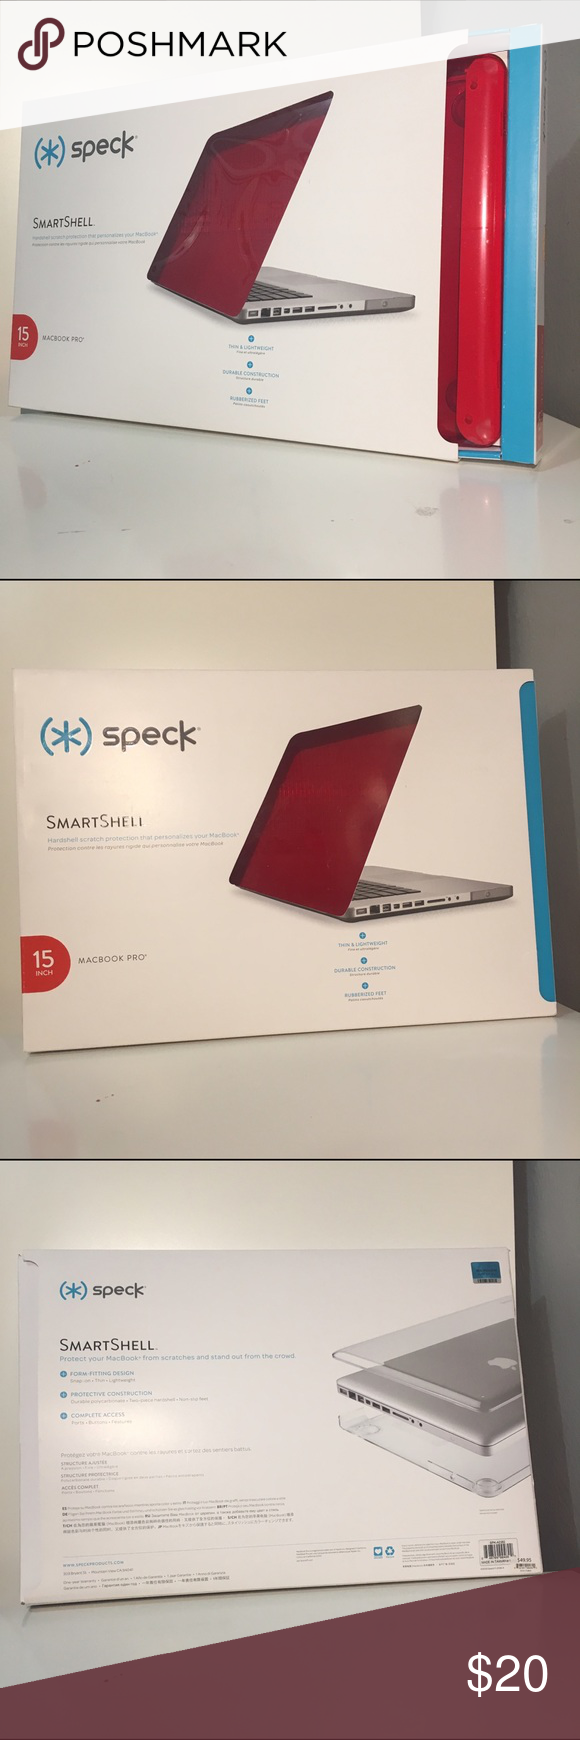 """15"""" MacBook Pro Speck Case 15"""" MacBook Pro Speck Case is in the color 'Poppy Red'. It is new and never been used in the box. The case protects your MacBook from scratches. The case is form-fitting and snaps onto the laptop. It is made of durable polycarbonate and has non-slip feet. There is complete access to ports, buttons, and features of the laptop. The case is very thin, perfect for on the go! If you have any questions comment down below! ☺️ Accessories Laptop Cases"""